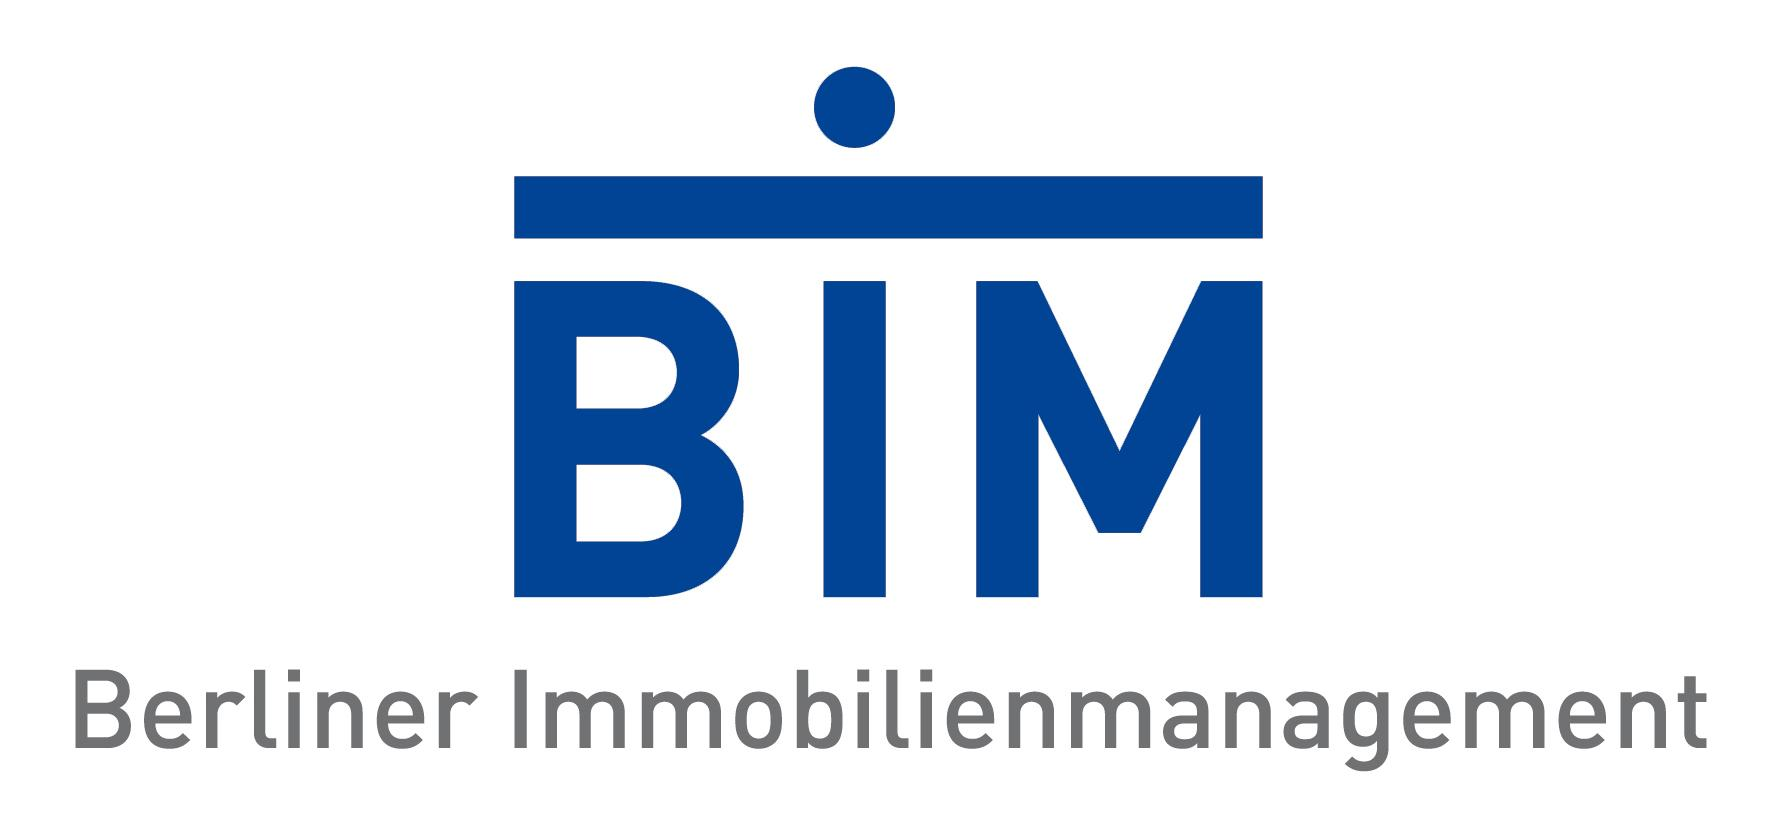 Berliner Immobilienmanagement GmbH